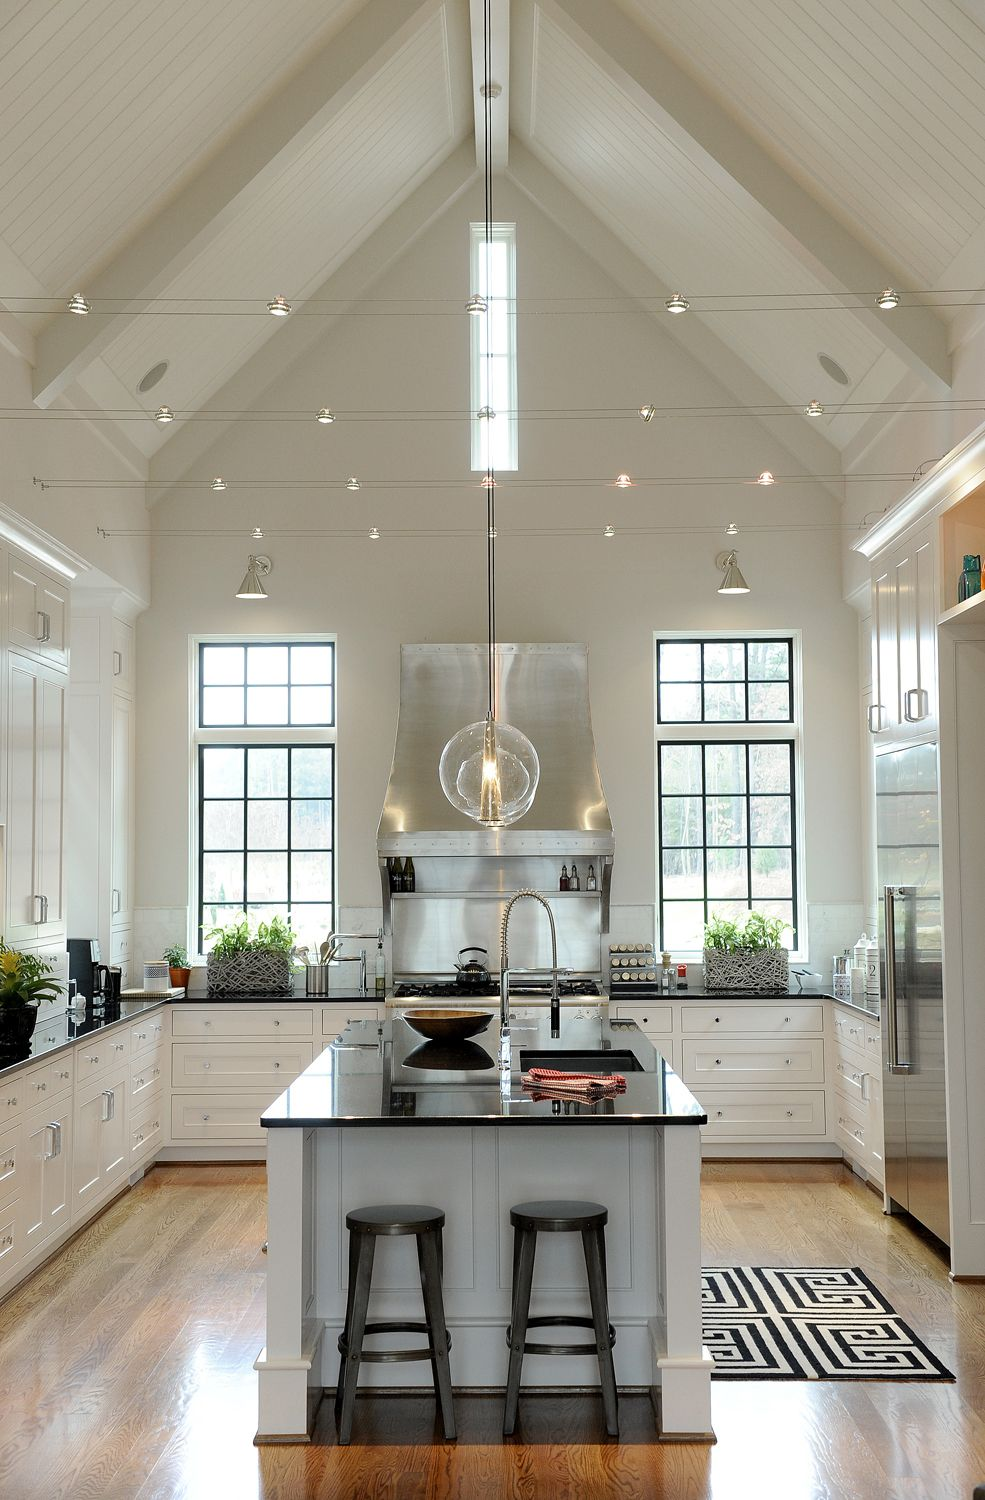 Vaulted ceilings 101 history pros cons and inspirational love the lighting and openness award winning kitchen vaulted ceiling lights aloadofball Image collections